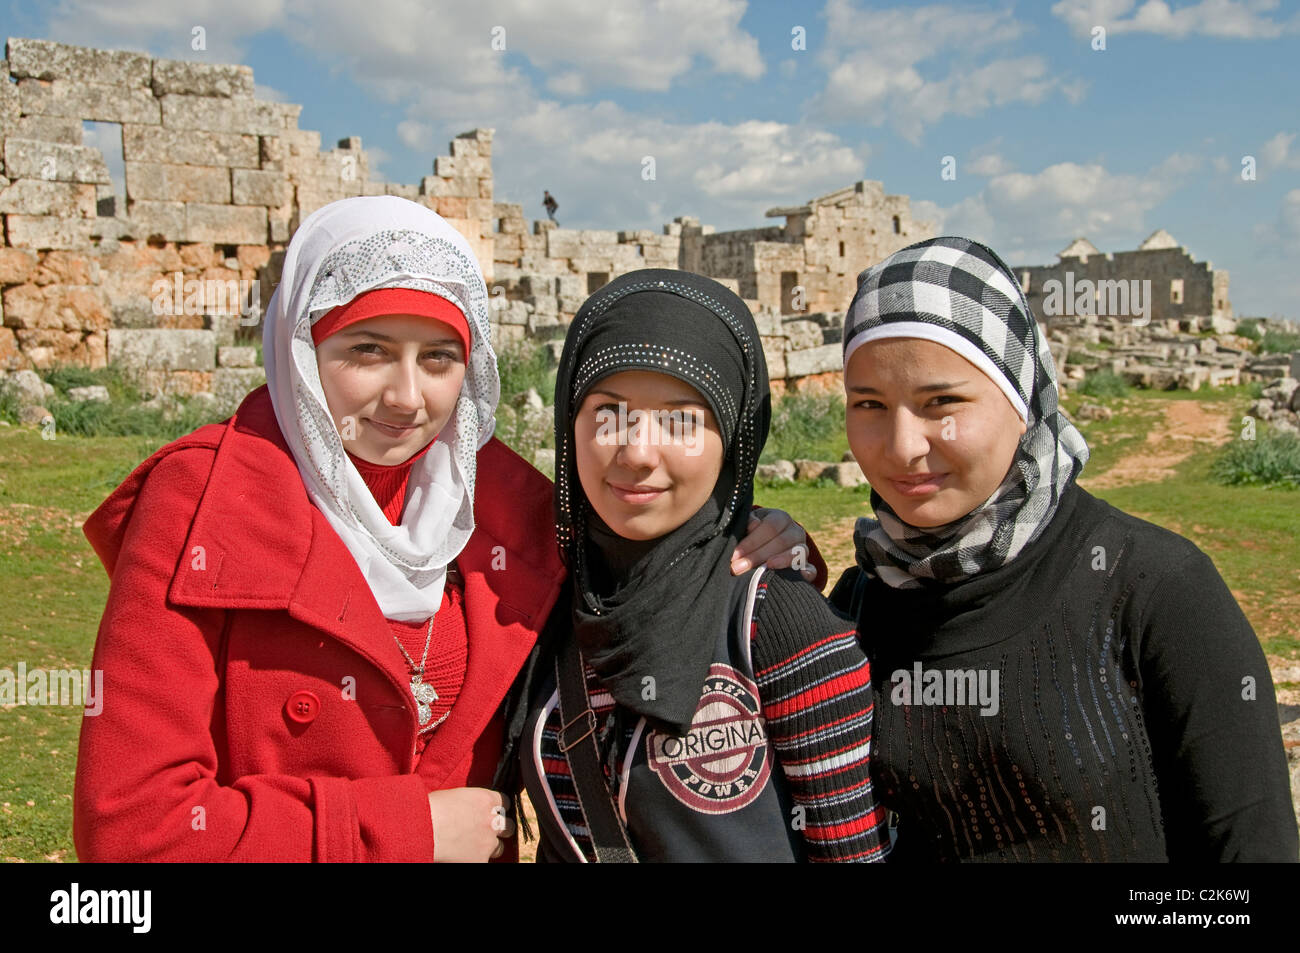 Syria Syrian Middle East young  Muslim woman girl teenager teen women girl teens teenagers - Stock Image